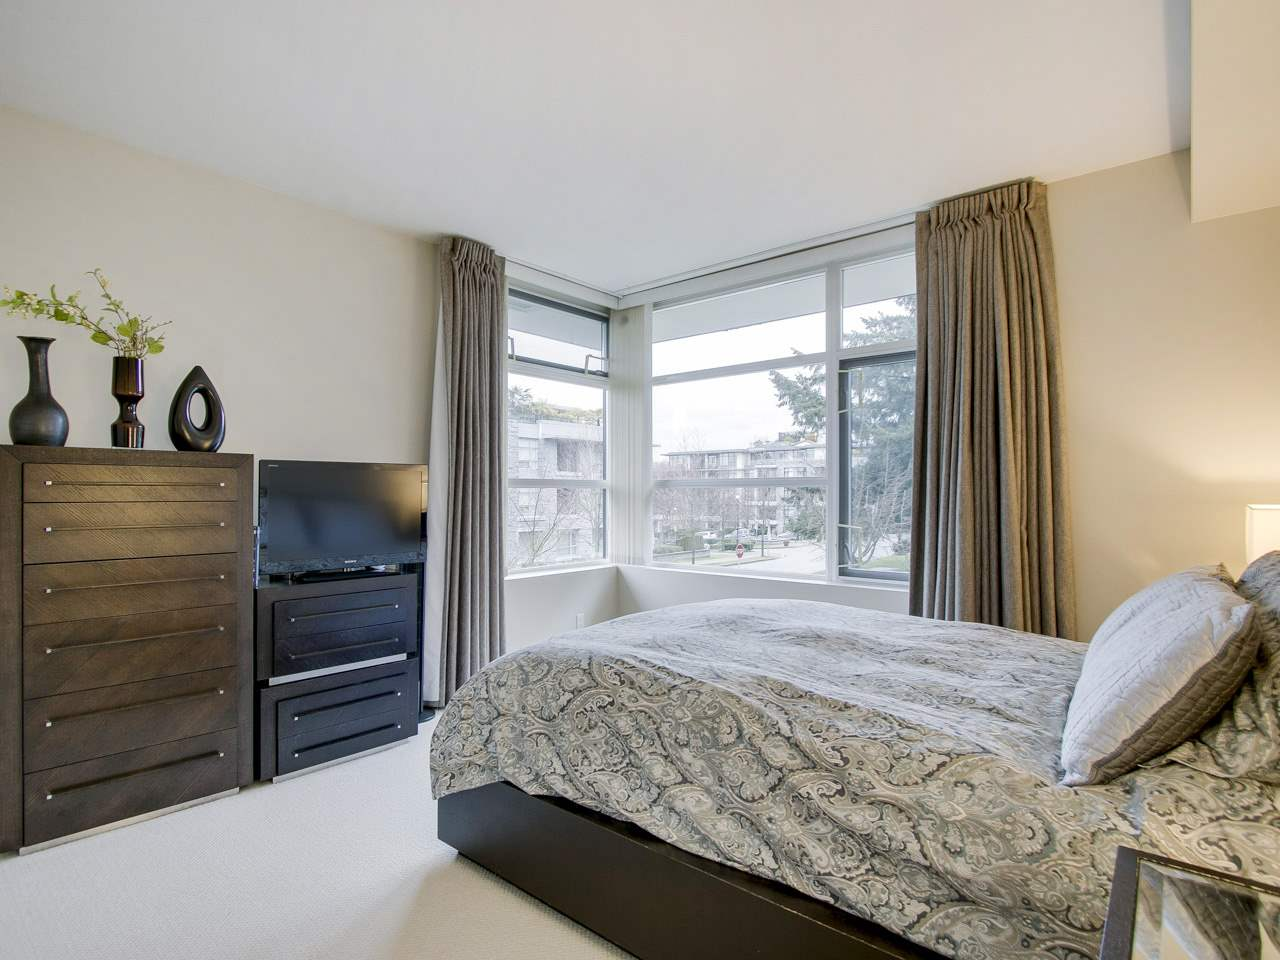 Photo 13: 113 6018 IONA DRIVE in Vancouver: University VW Townhouse for sale (Vancouver West)  : MLS® # R2146501